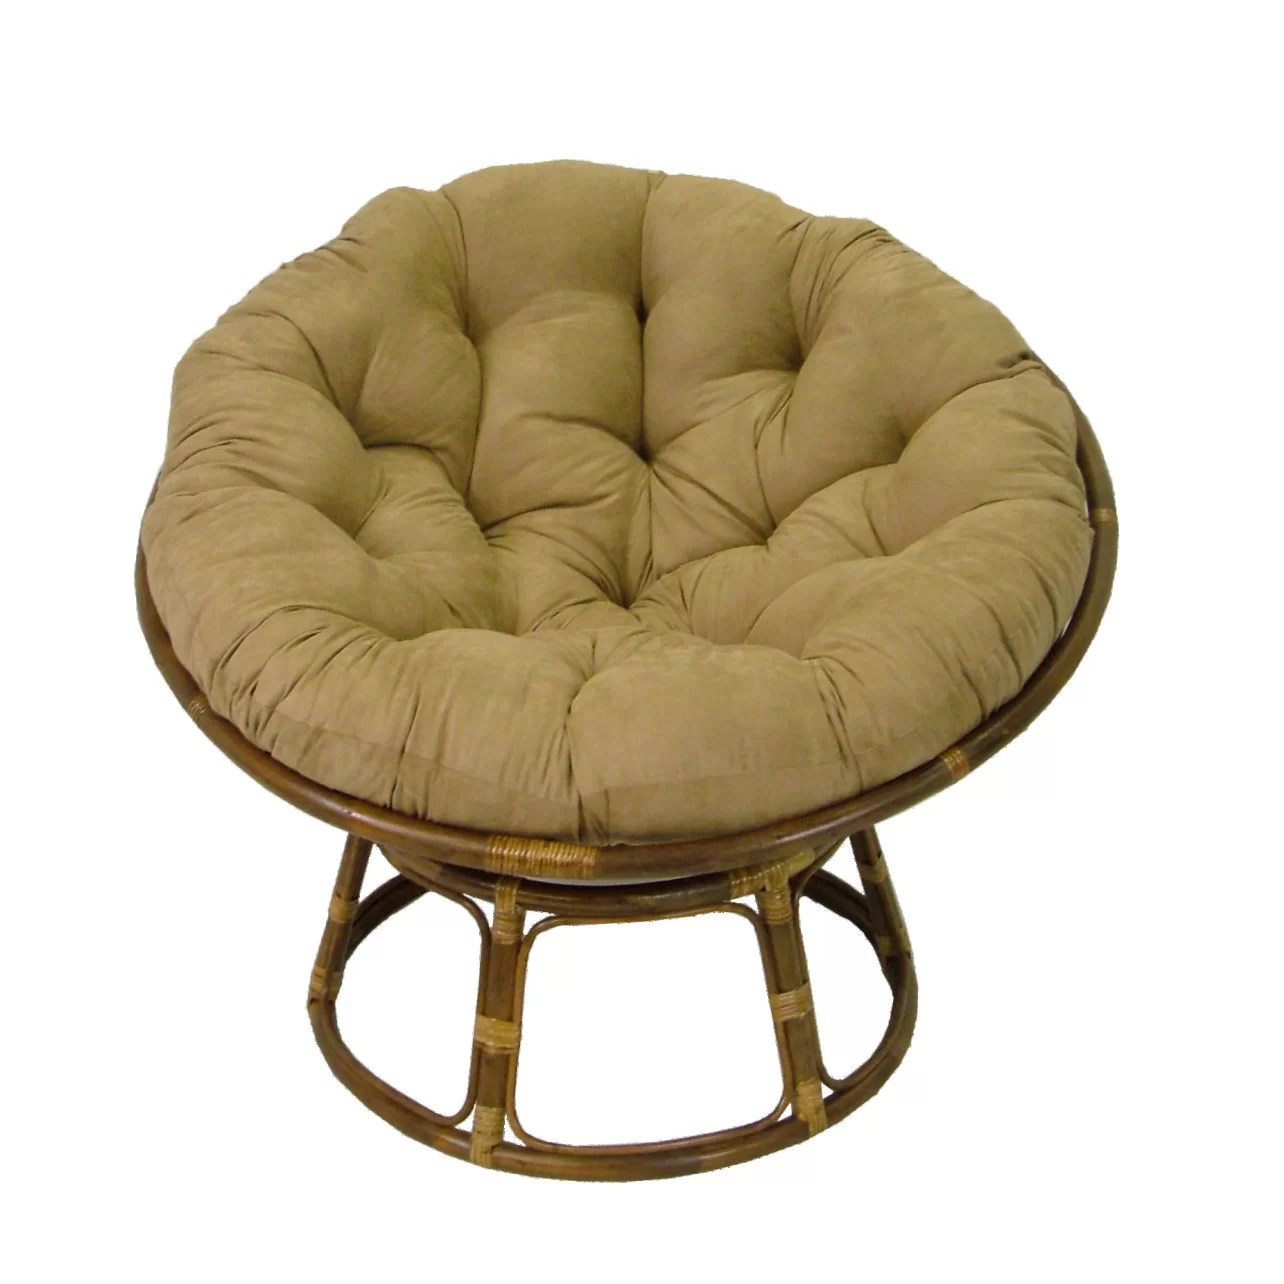 replacement papasan chair cushion cheap chairs for church blazing needles lounge and reviews